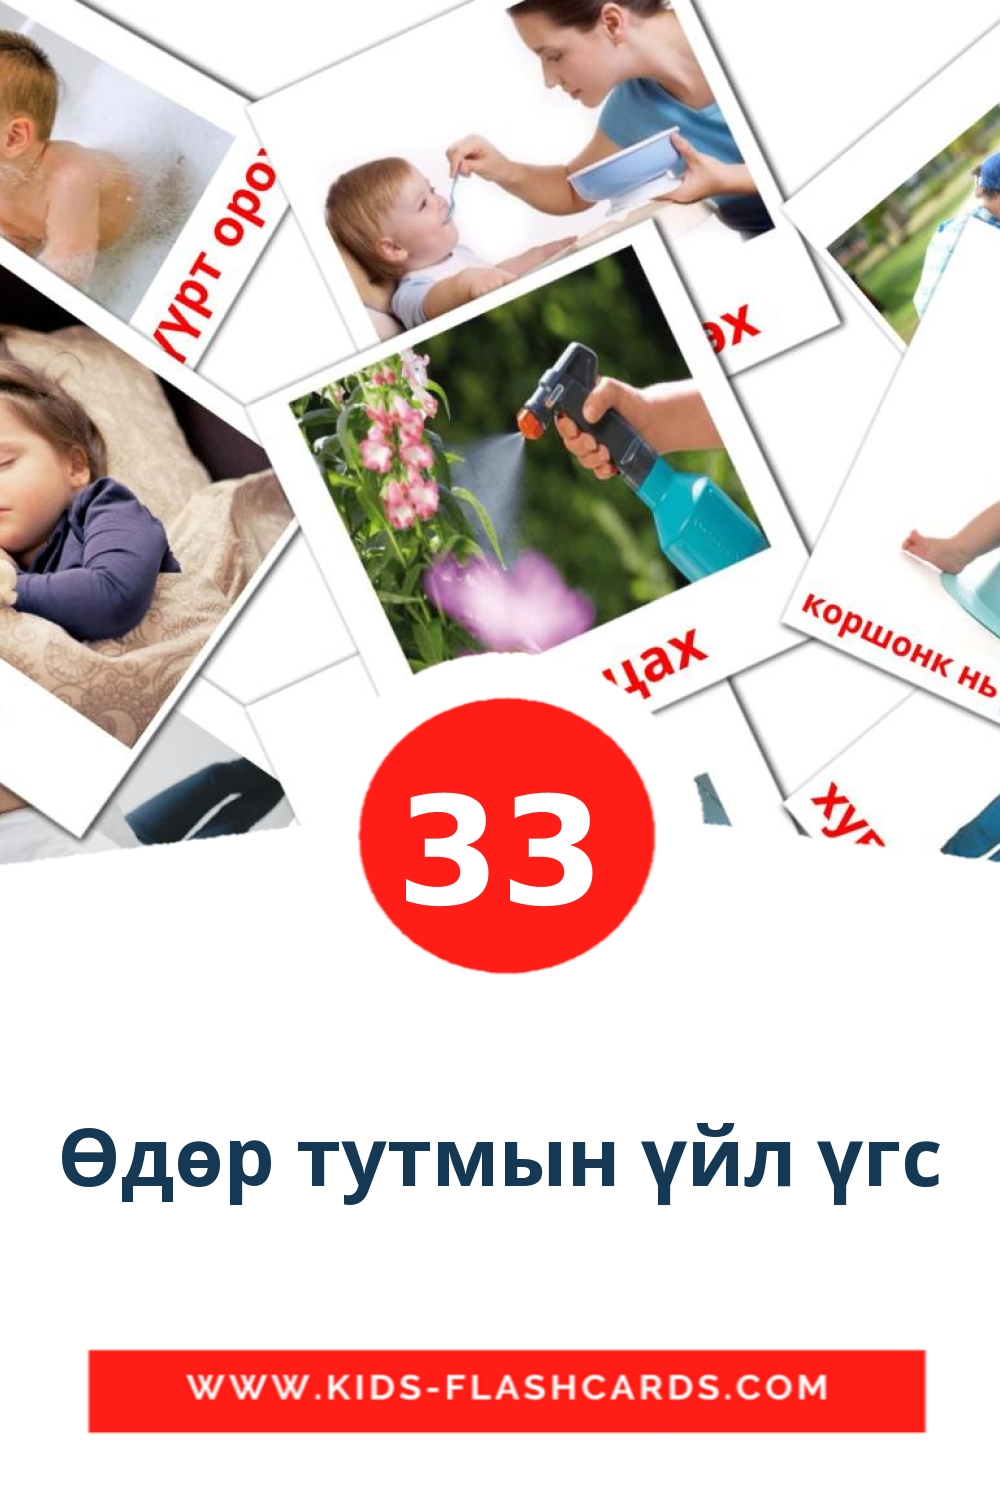 33 Өдөр тутмын үйл үгс Picture Cards for Kindergarden in mongolian